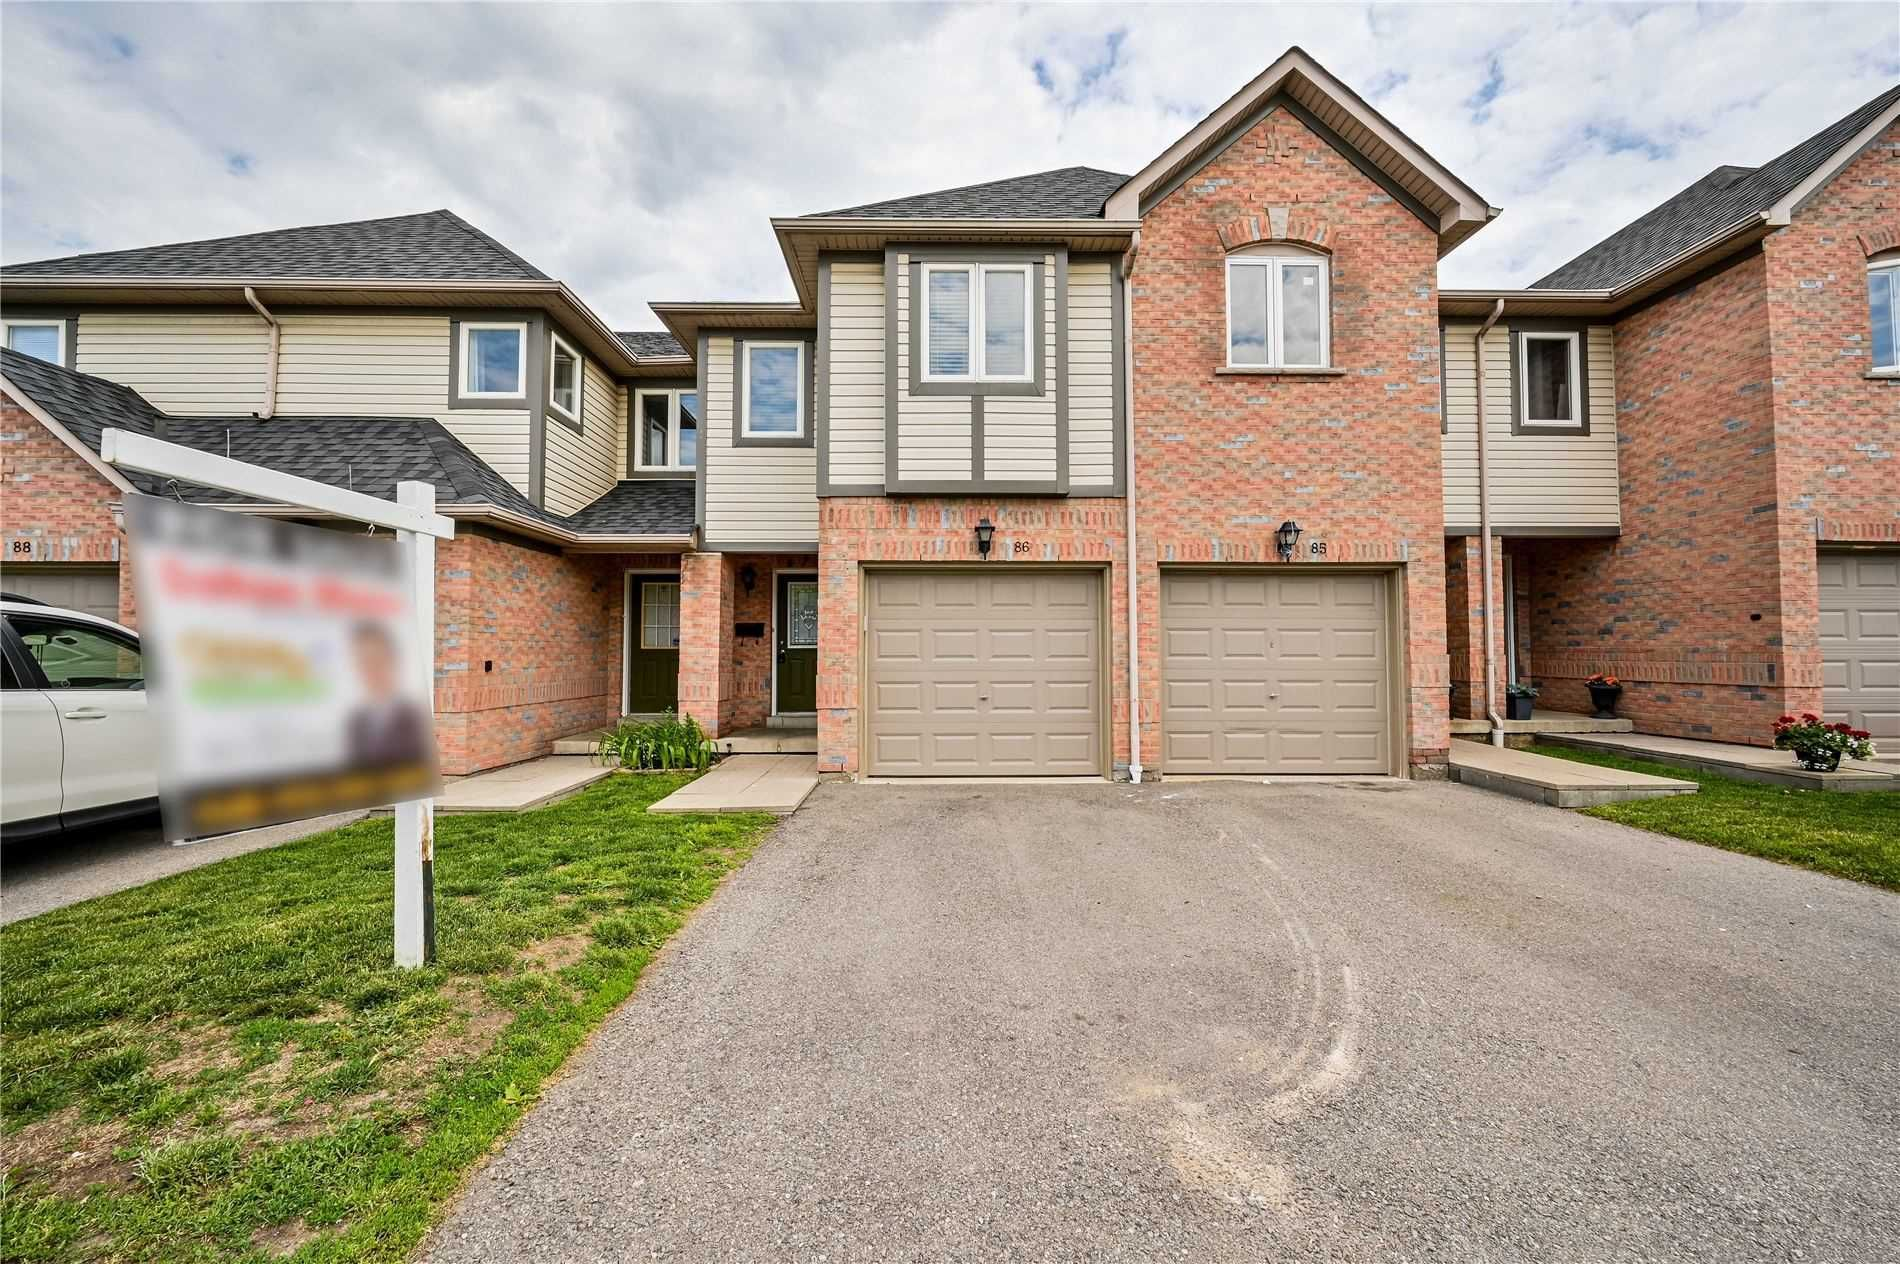 5255 Guildwood Way, unit 86 for sale in Toronto - image #1